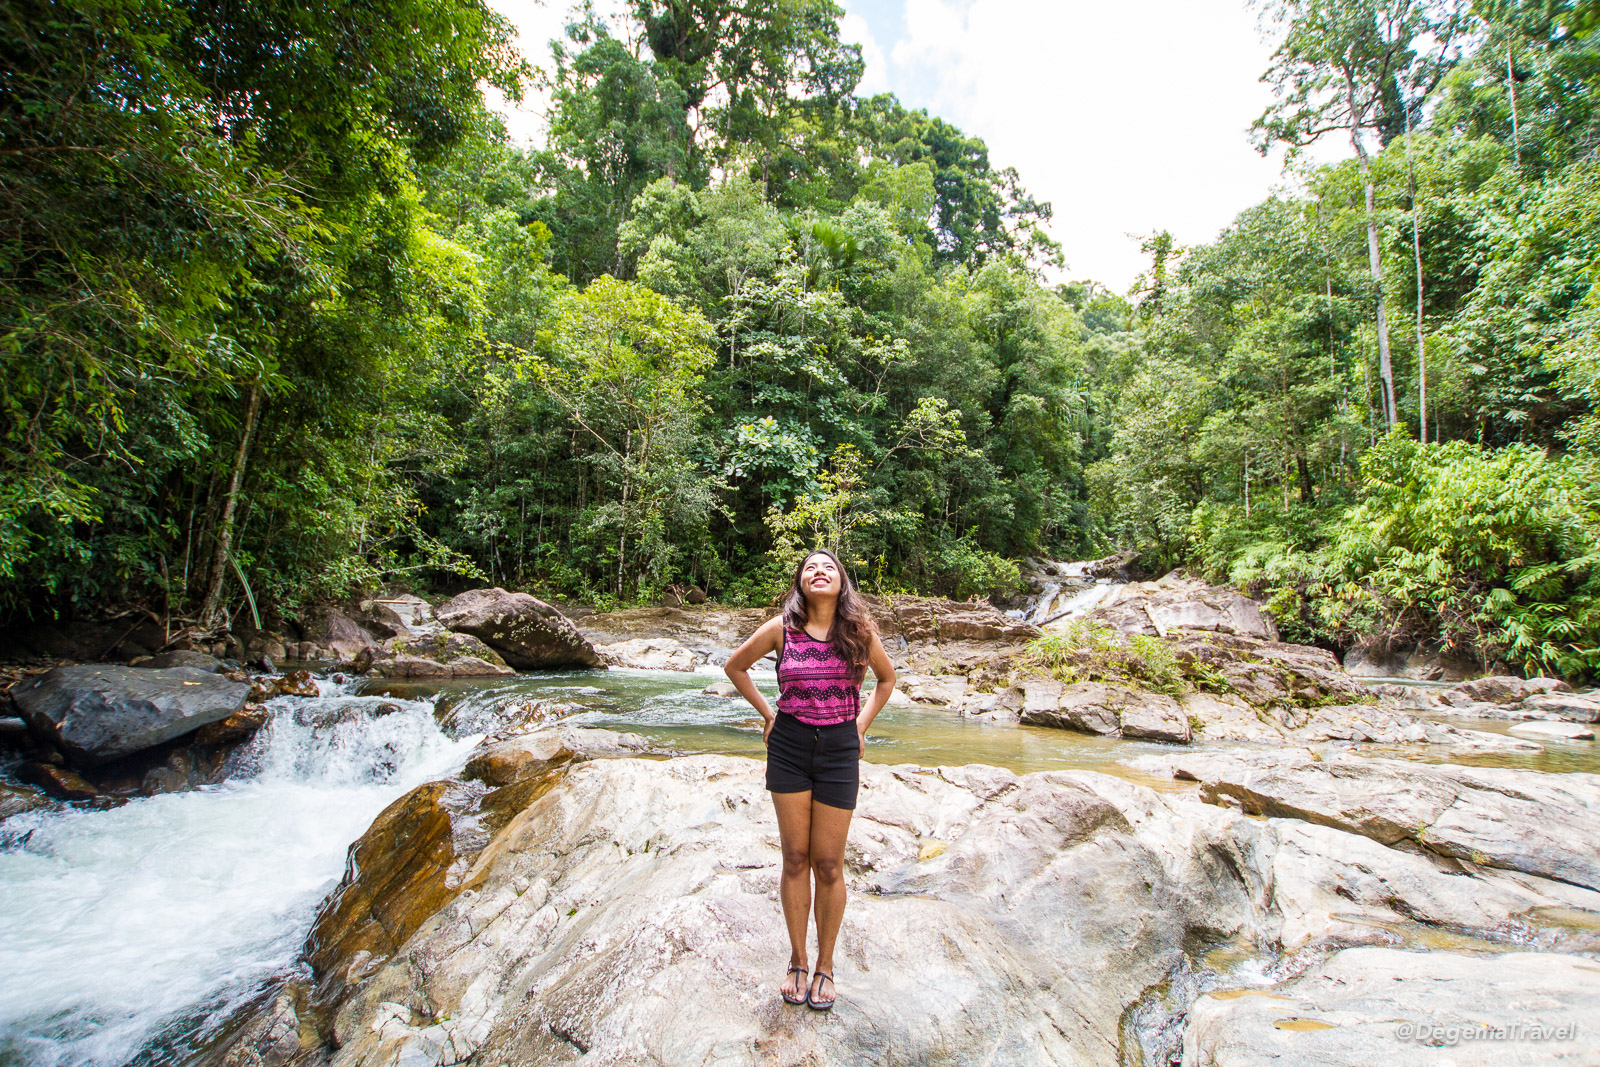 Posing for photos among the waterfalls in Ton Pariwat Wildlife Sanctuary, Thailand